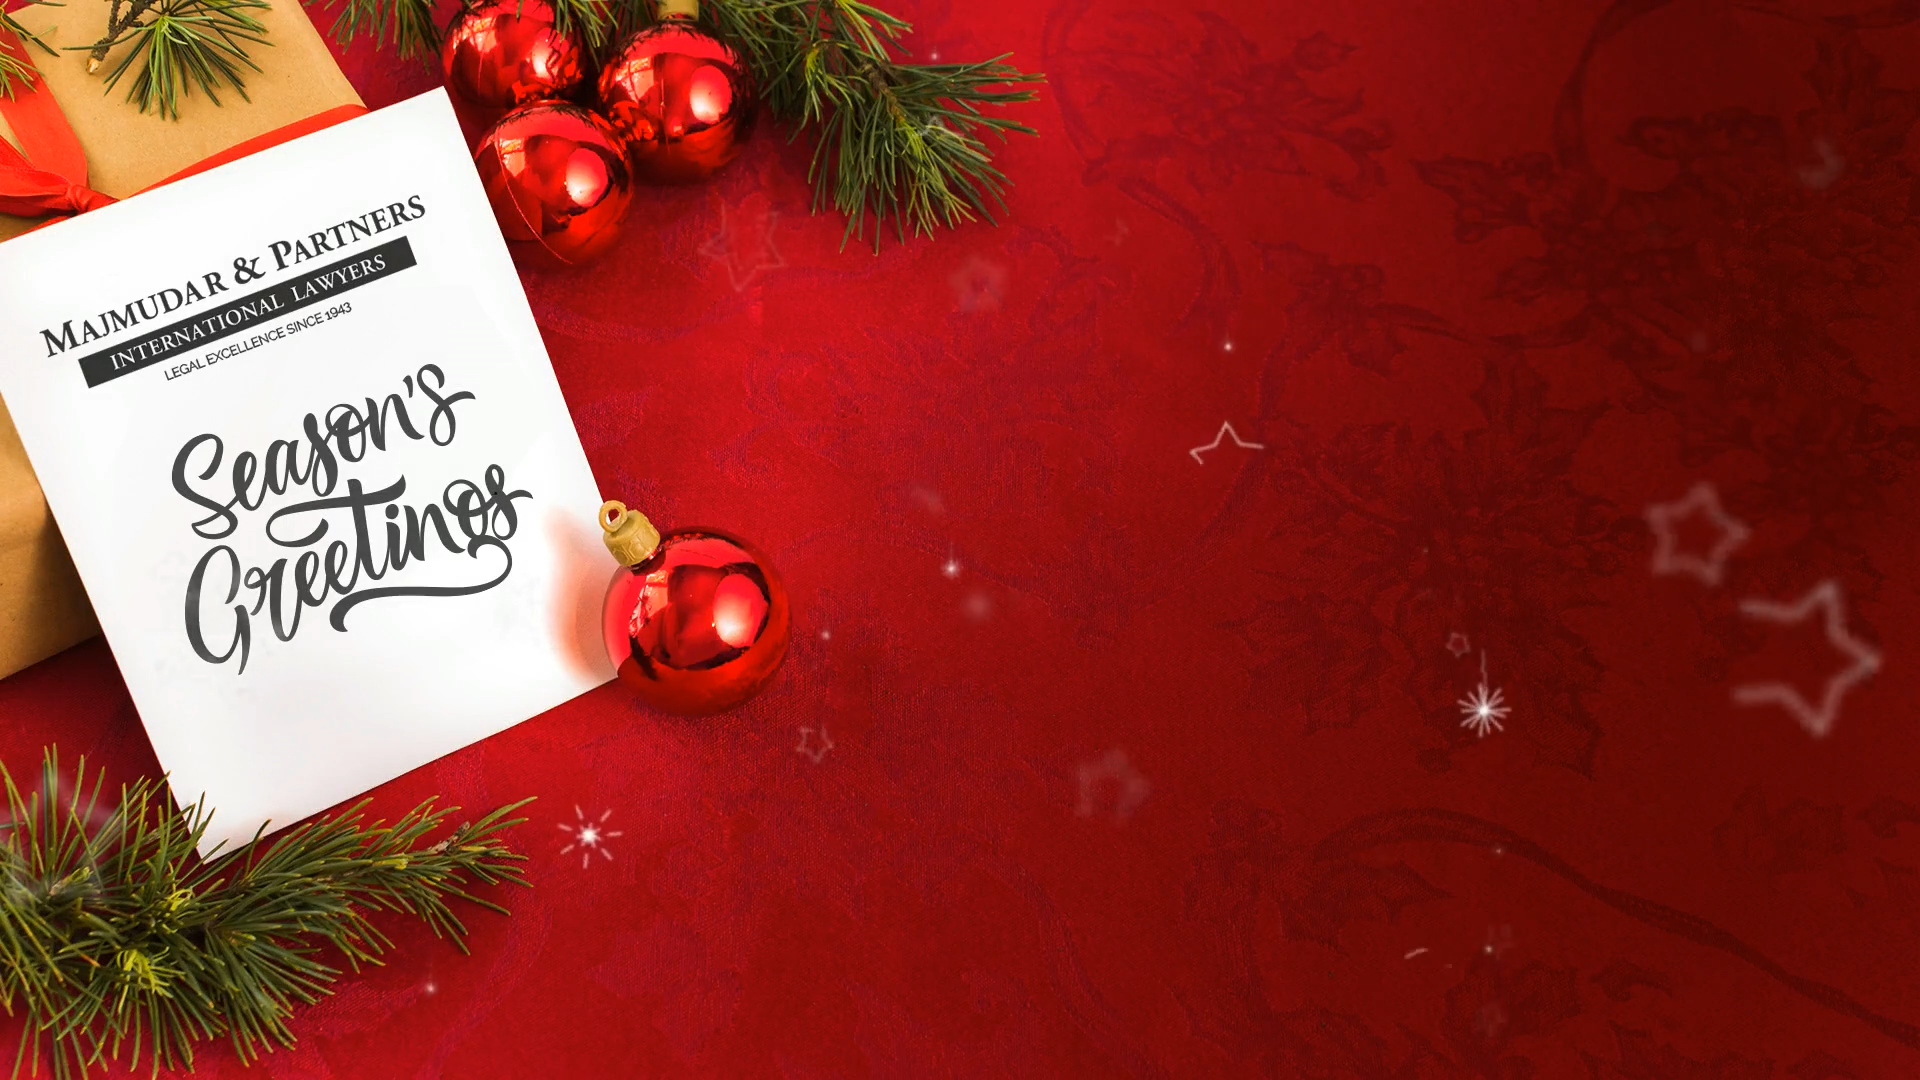 Merry Christmas from Majmudar & Partners